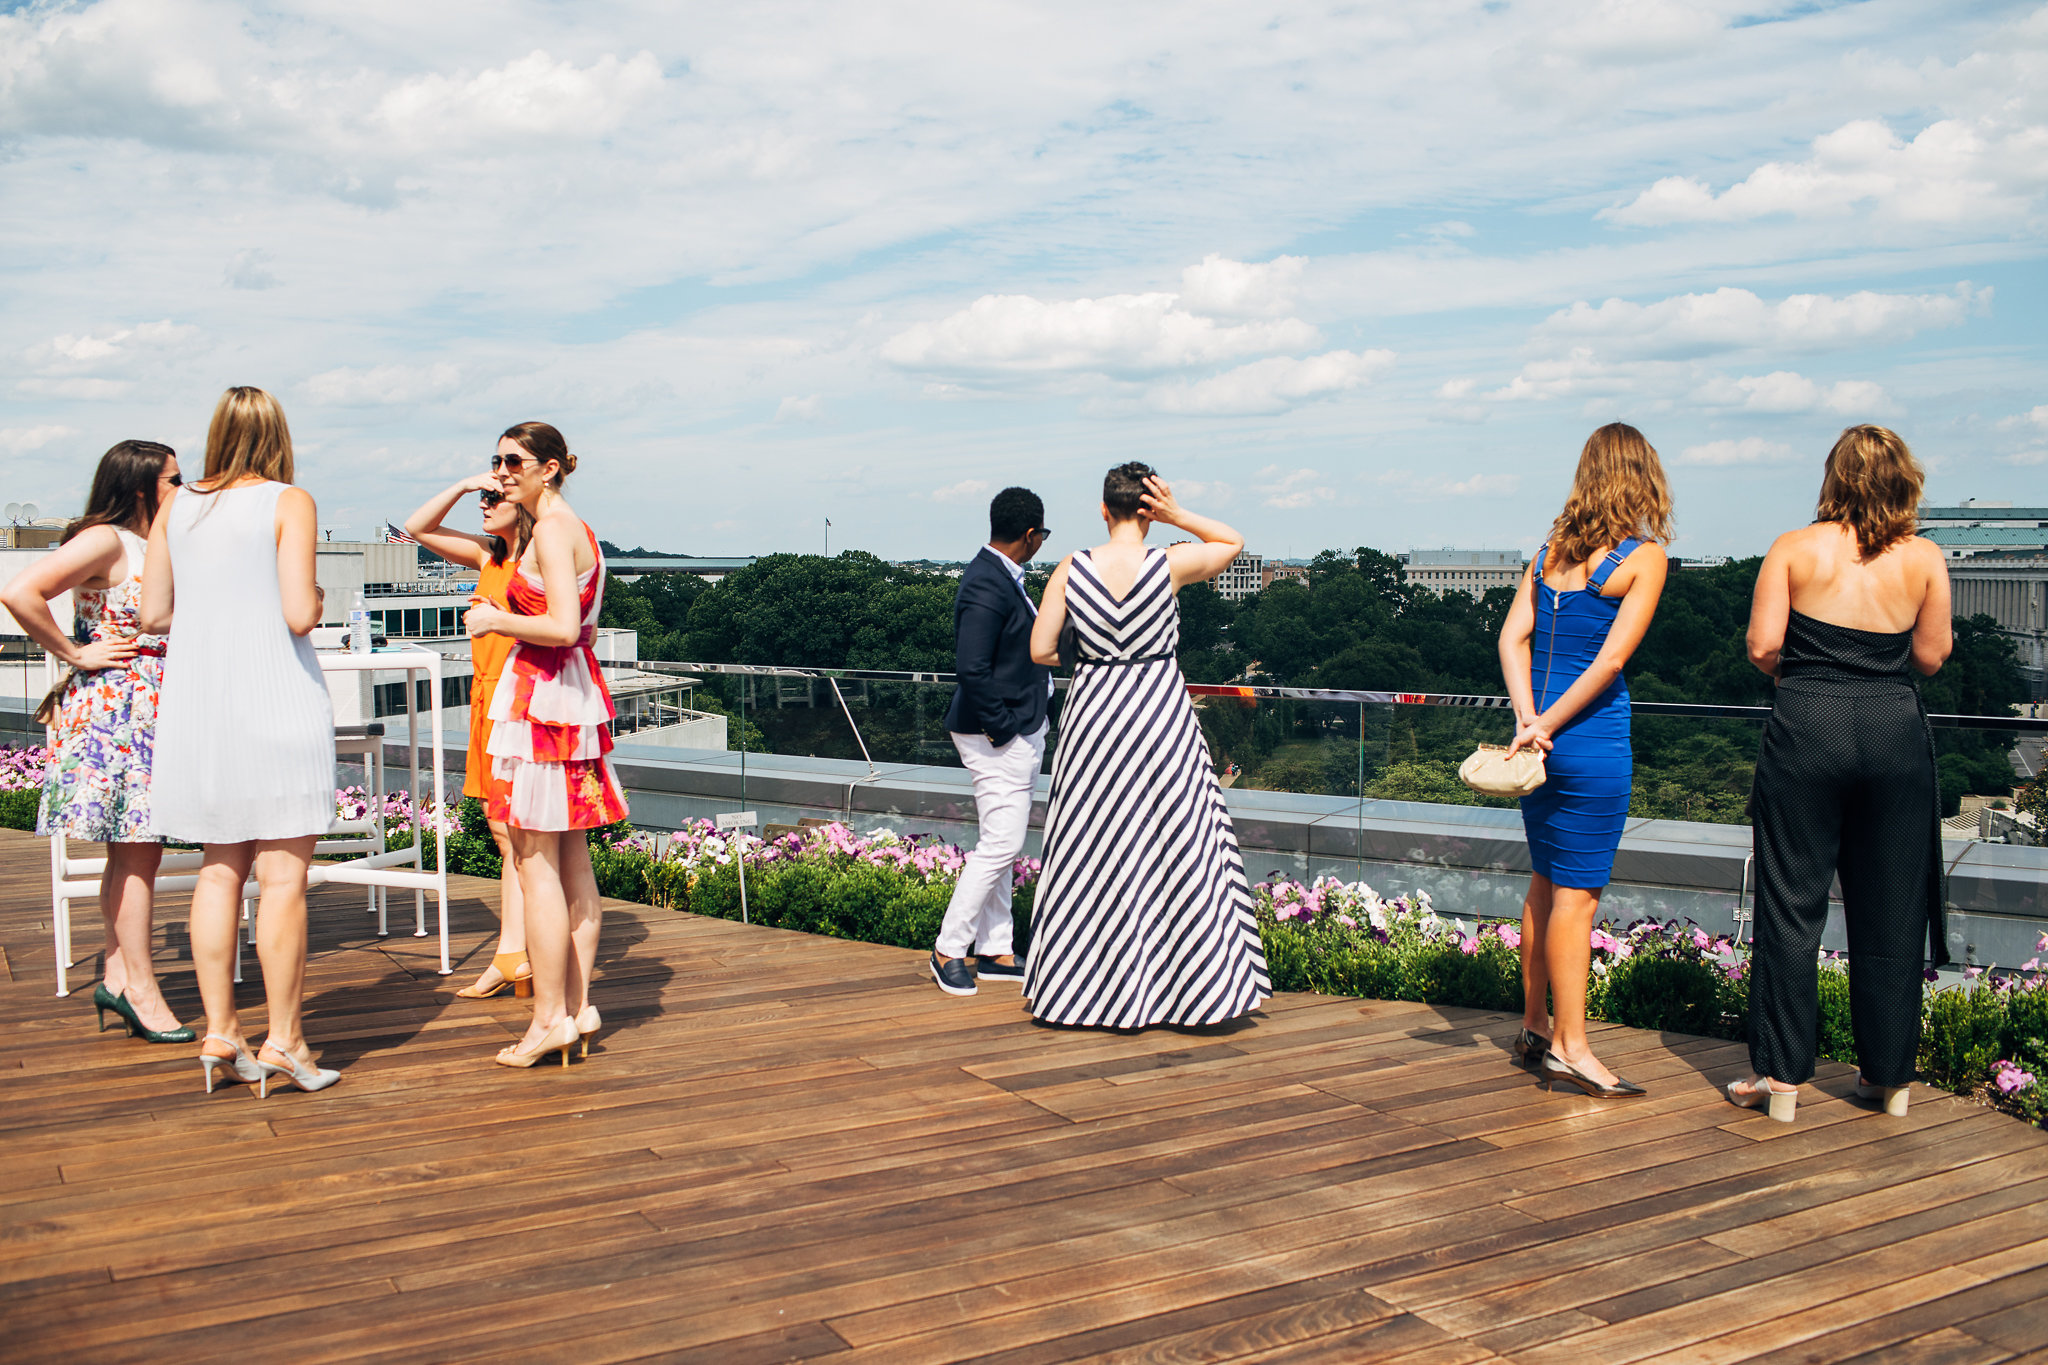 Event attendees socializing on the rooftop deck